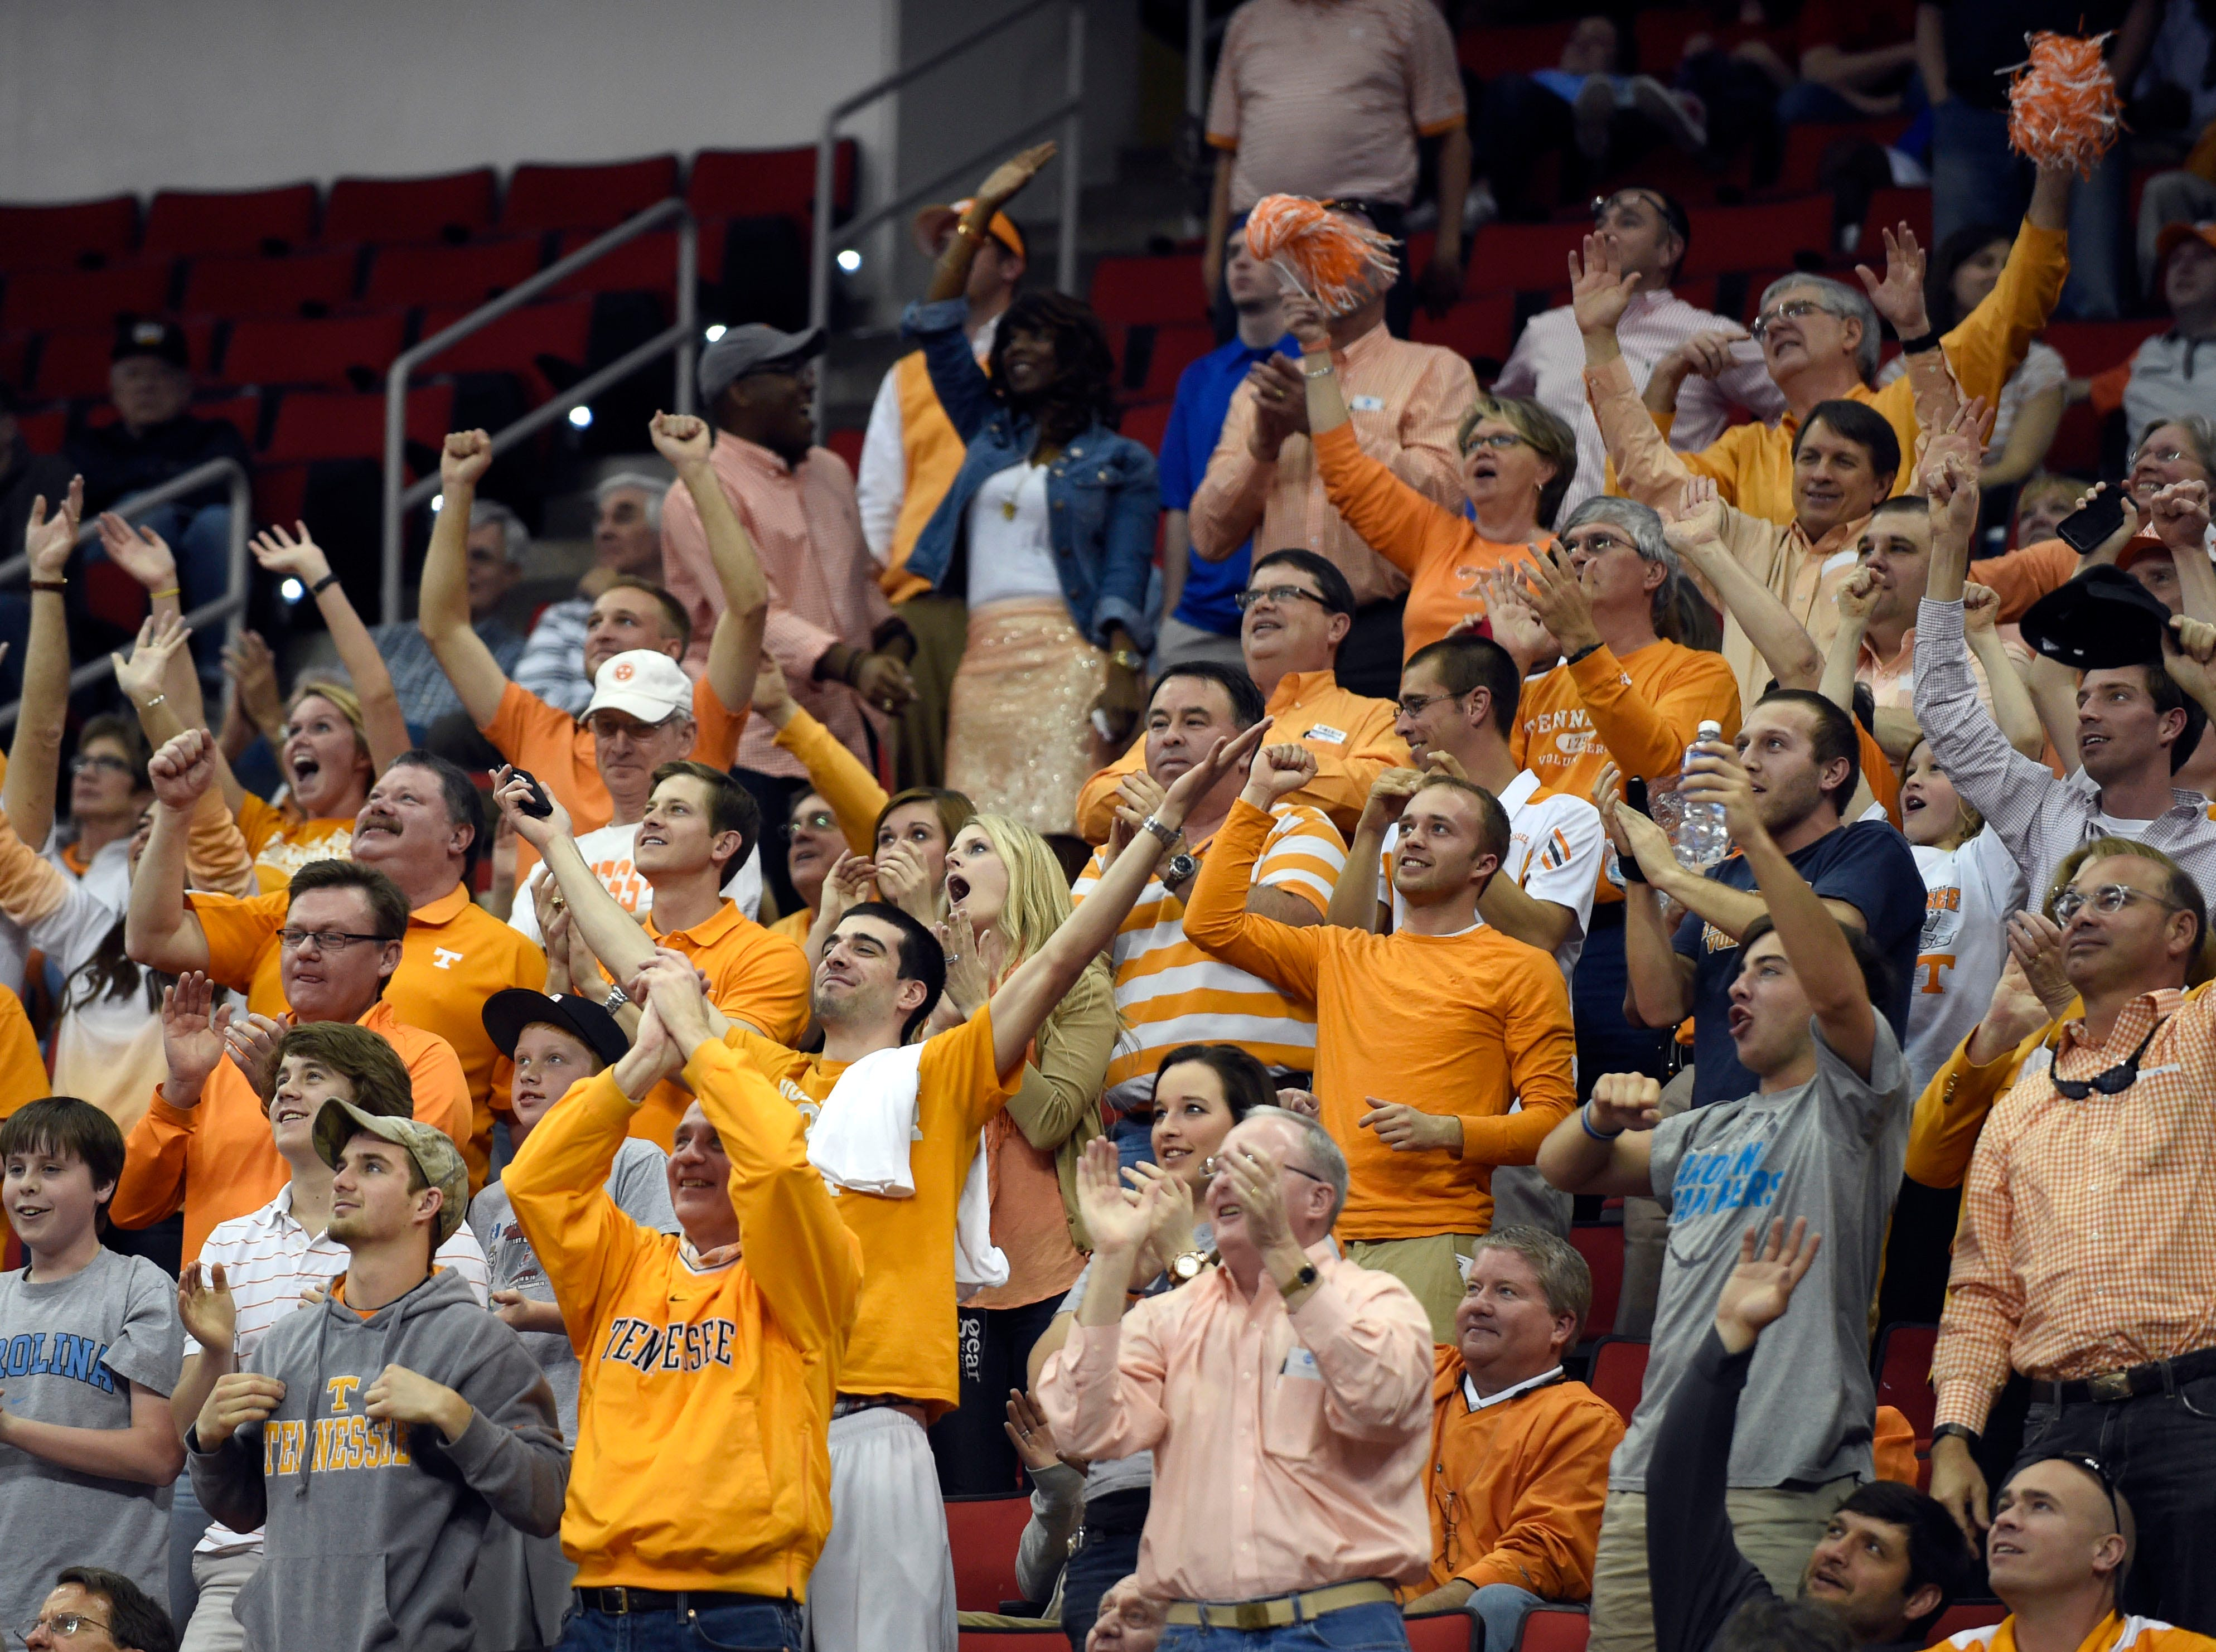 Tennessee fans celebrate their team's 86-67 win over Massachusetts during the second half of an NCAA tournament game at the PNC Arena in Raleigh, N.C. on Friday, March 21, 2014.